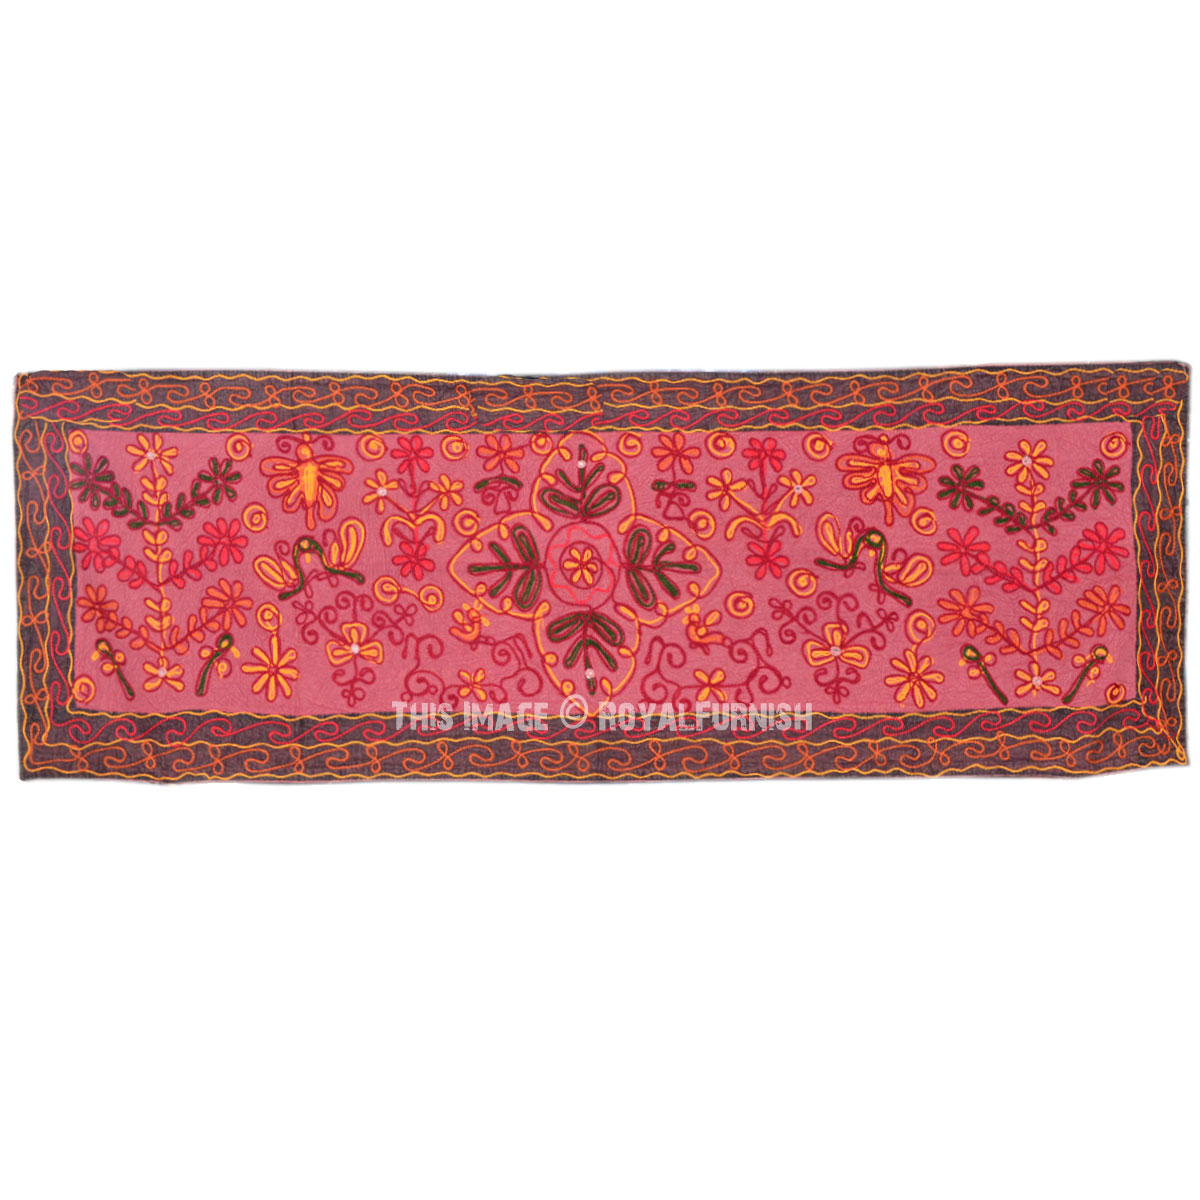 Indian Ari Woolen Woven Embroidered Fabric Tapestry Wall